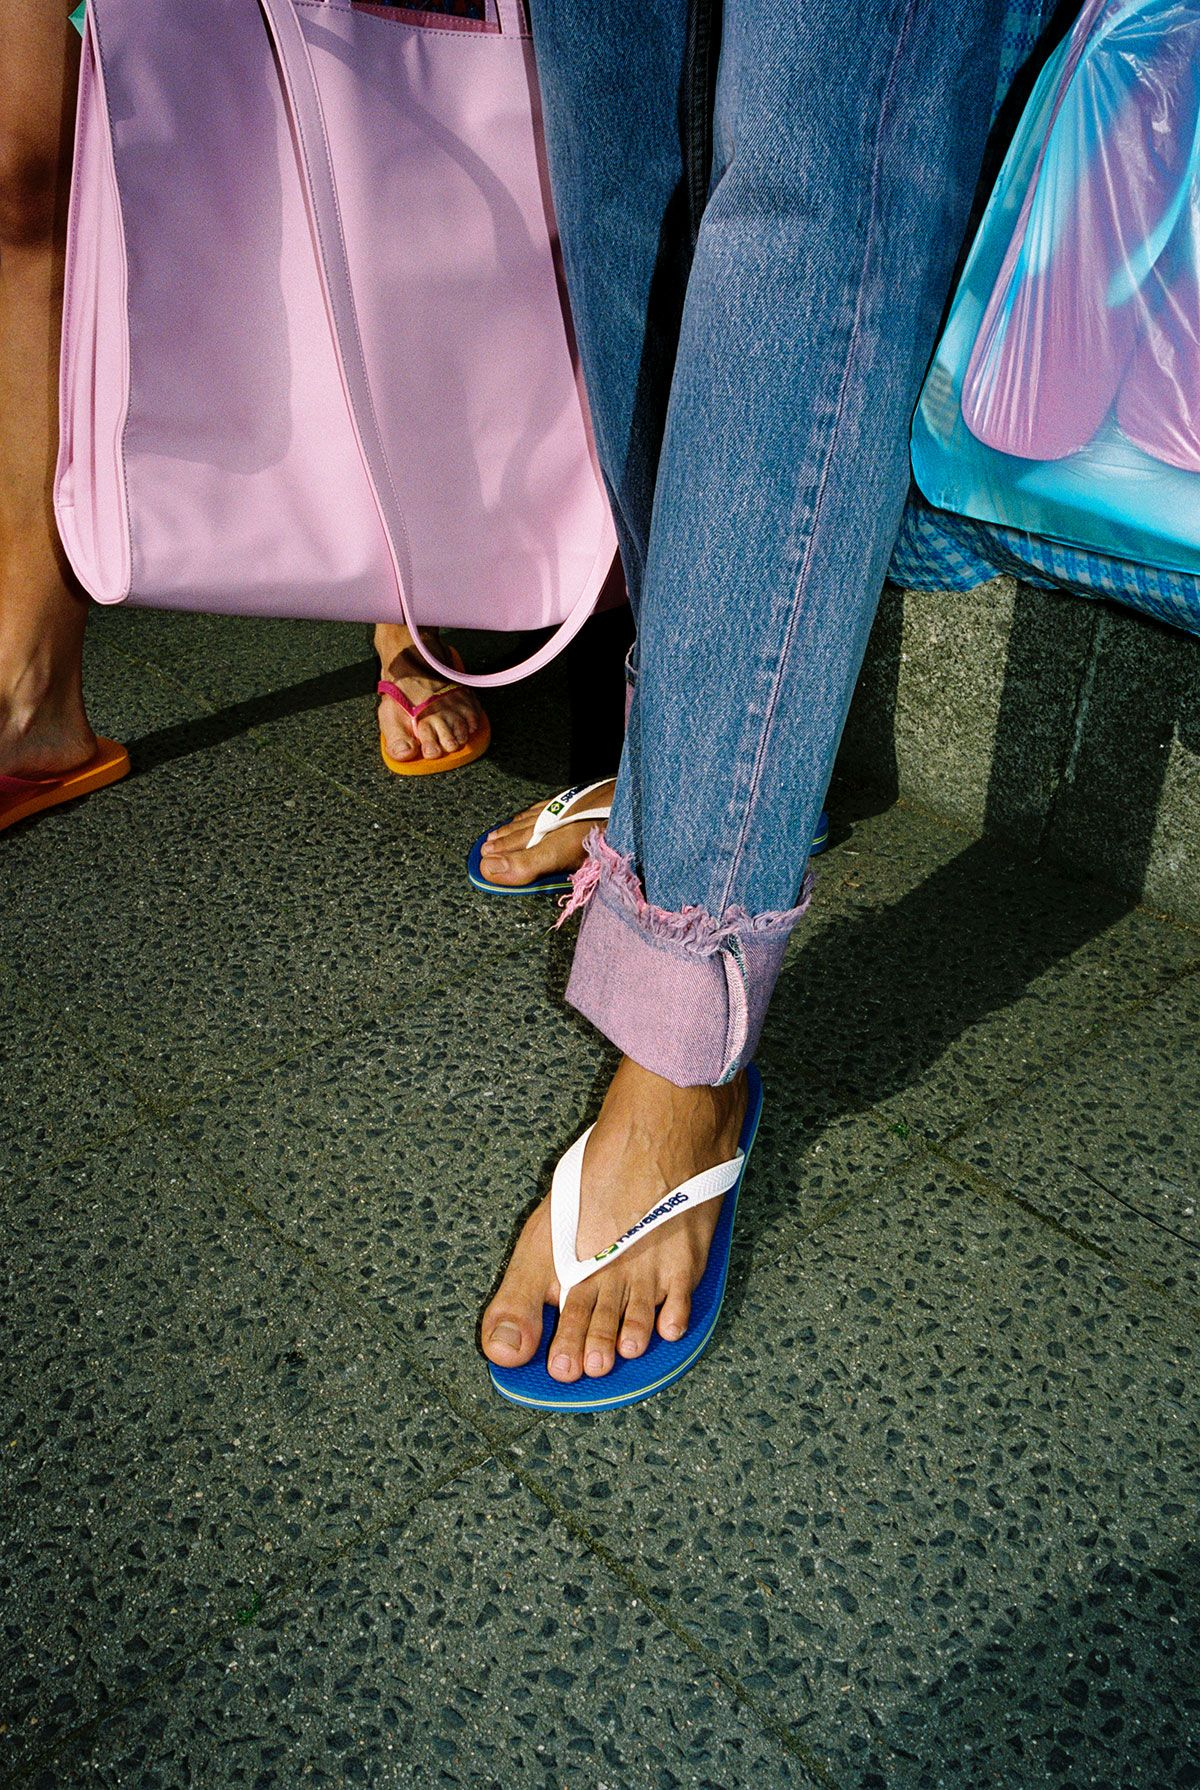 Havaianas New Lookbook Shows Why Flip Flops Should Be in Your Summer Rotation 38